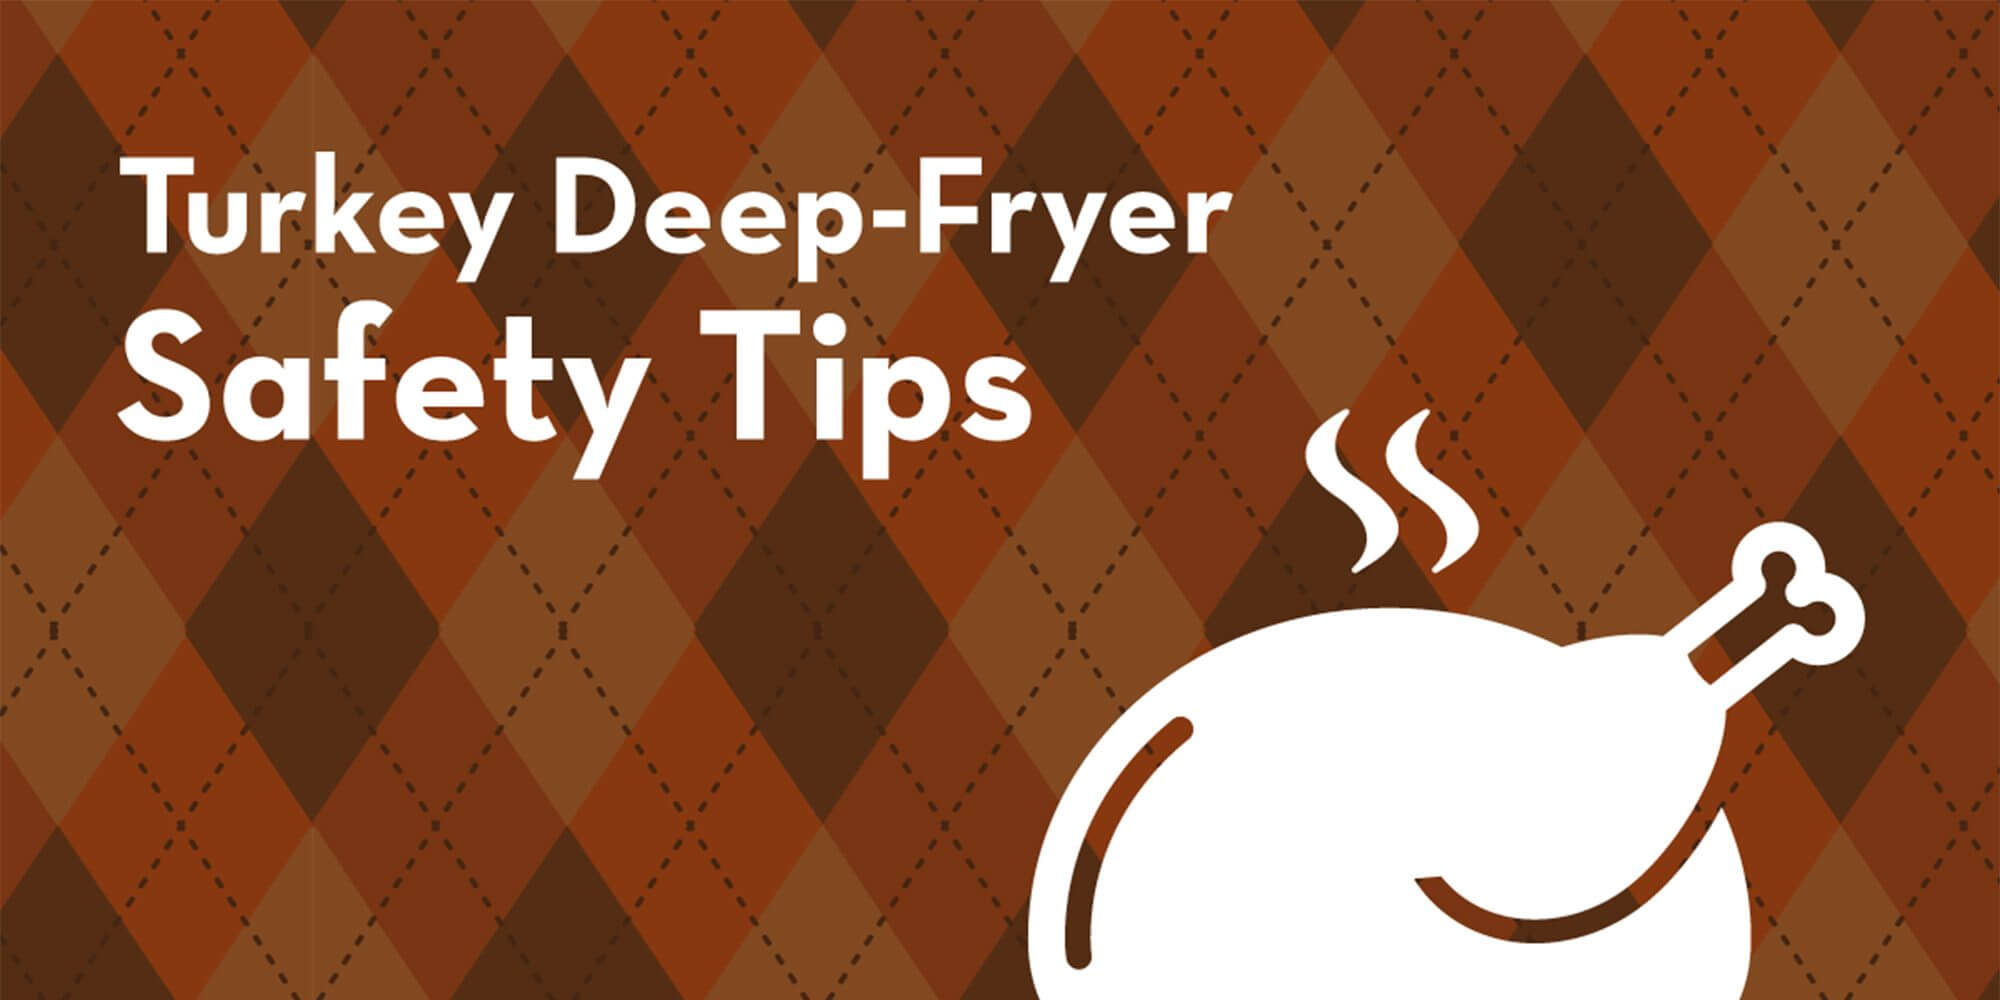 Turkey Deep-Frying Safety